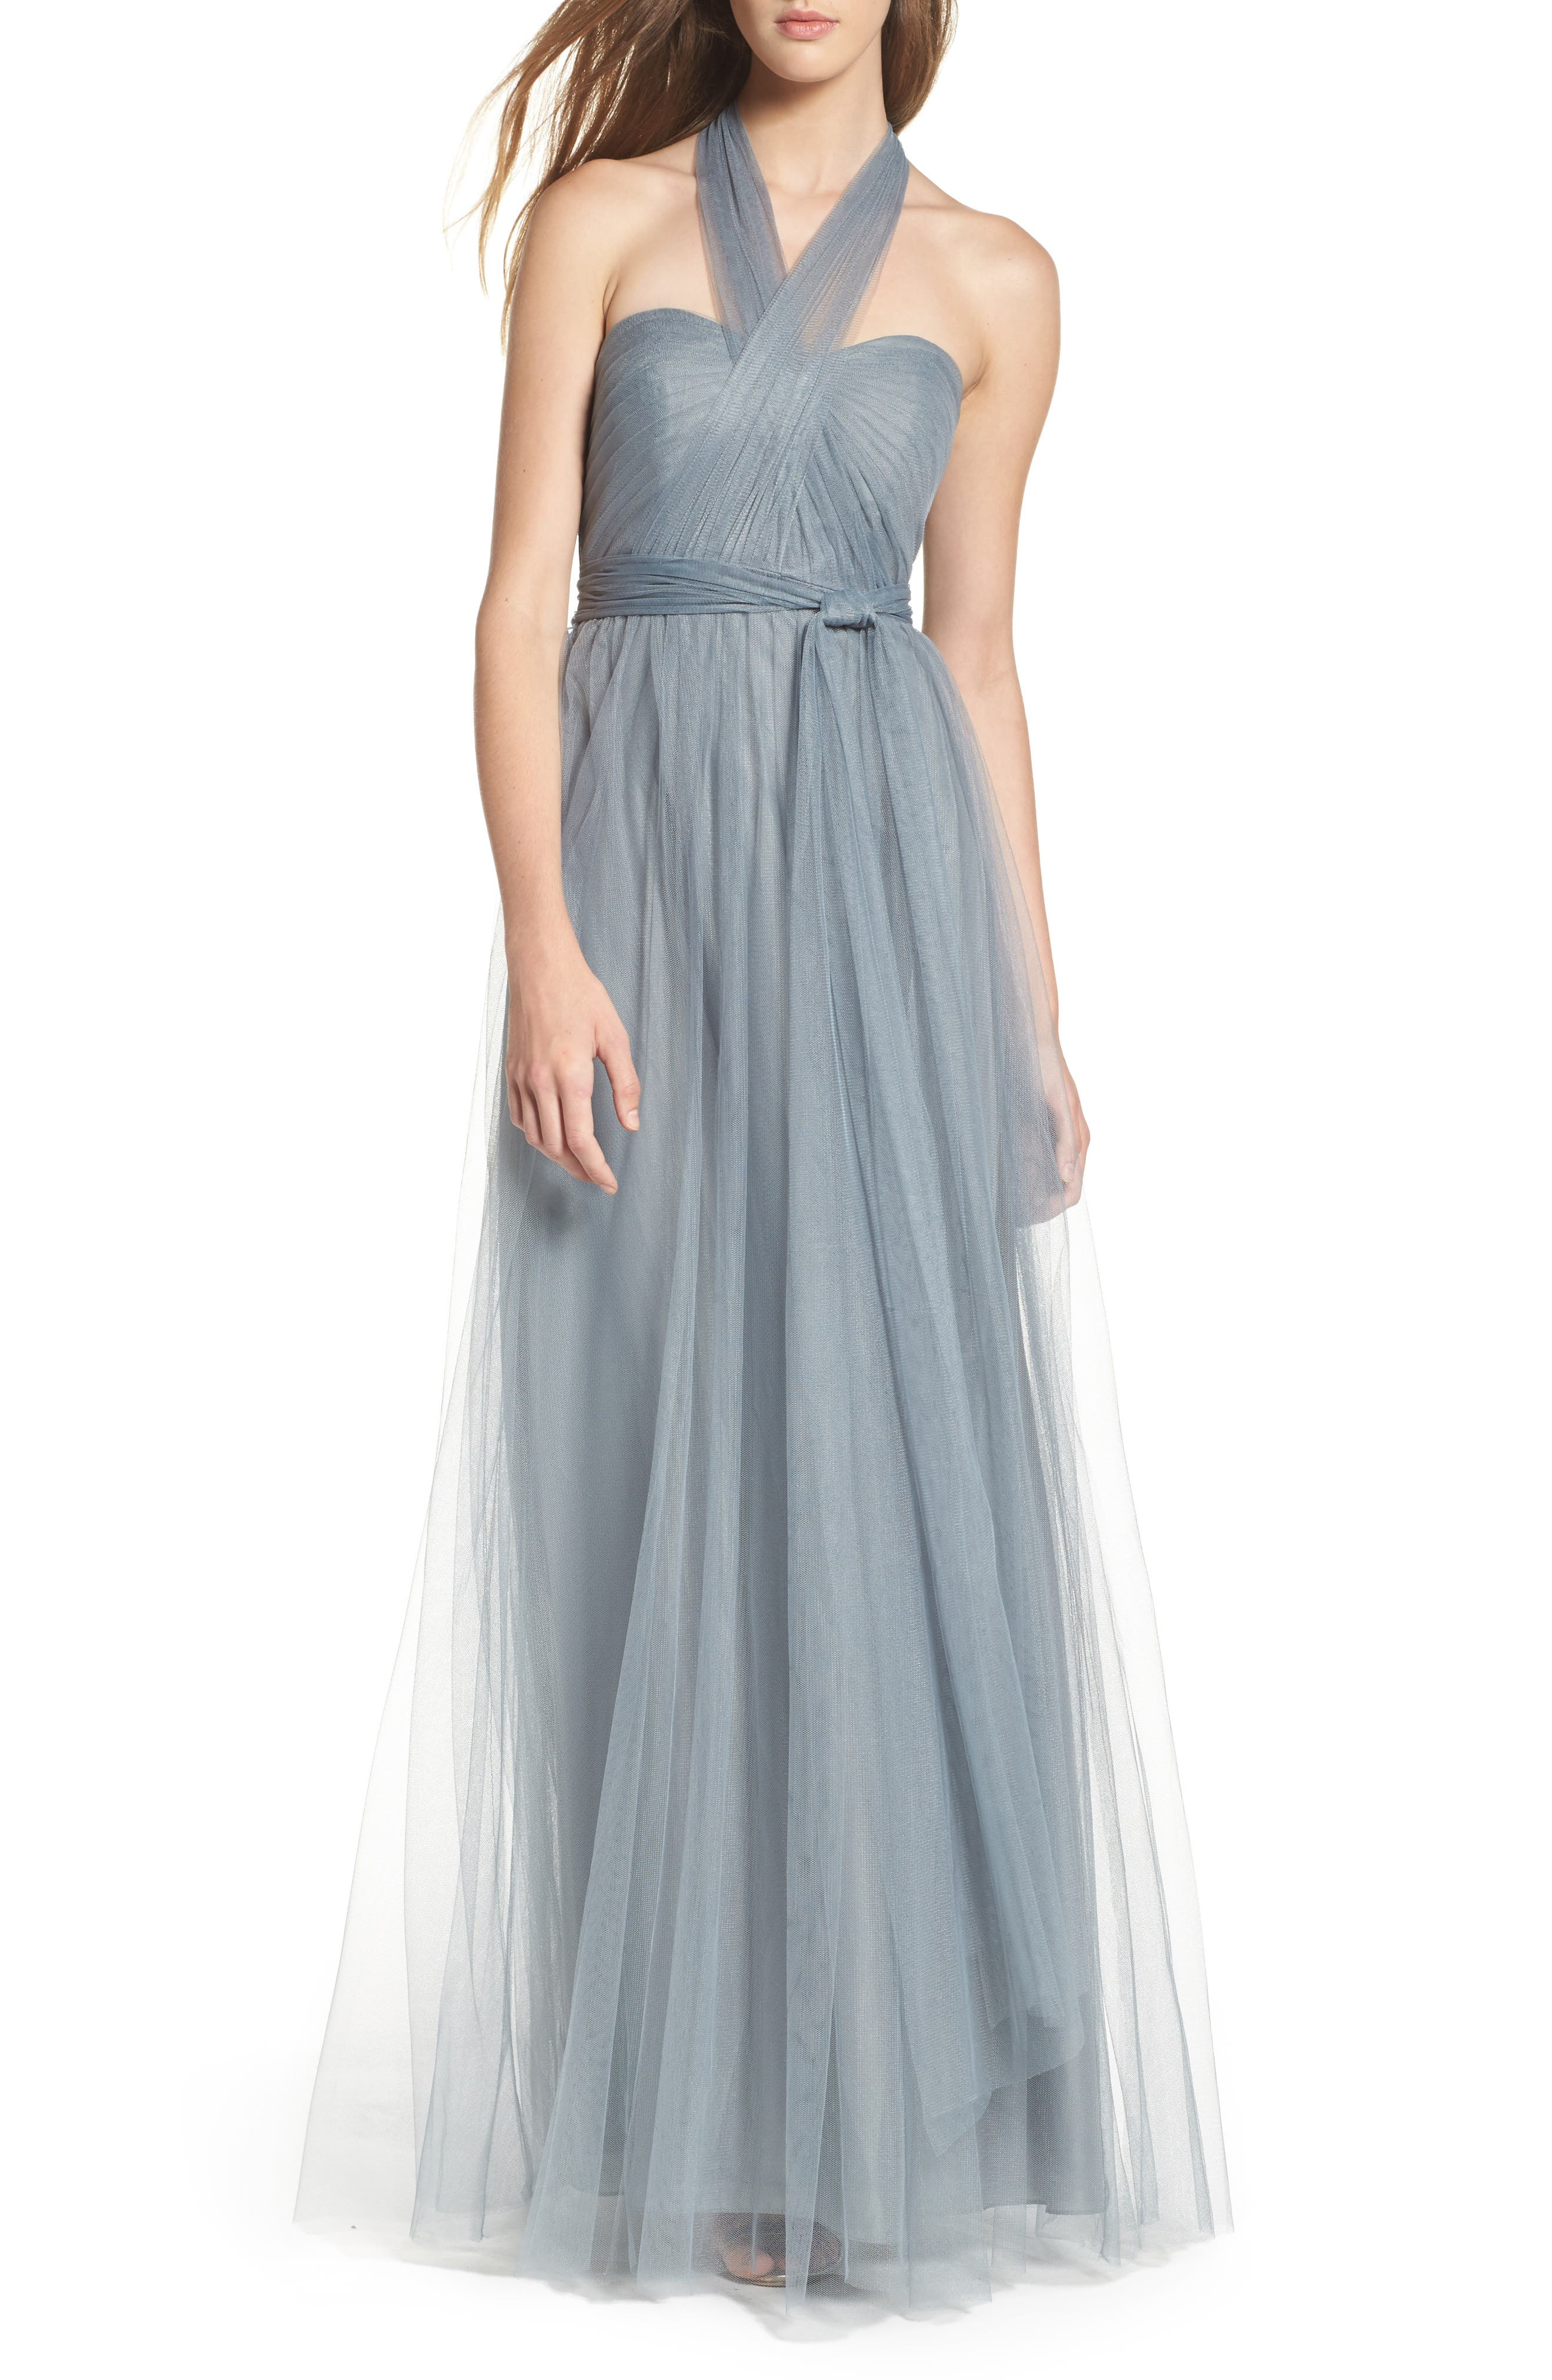 Annabelle Convertible Tulle Column Dress,                             Alternate thumbnail 37, color,